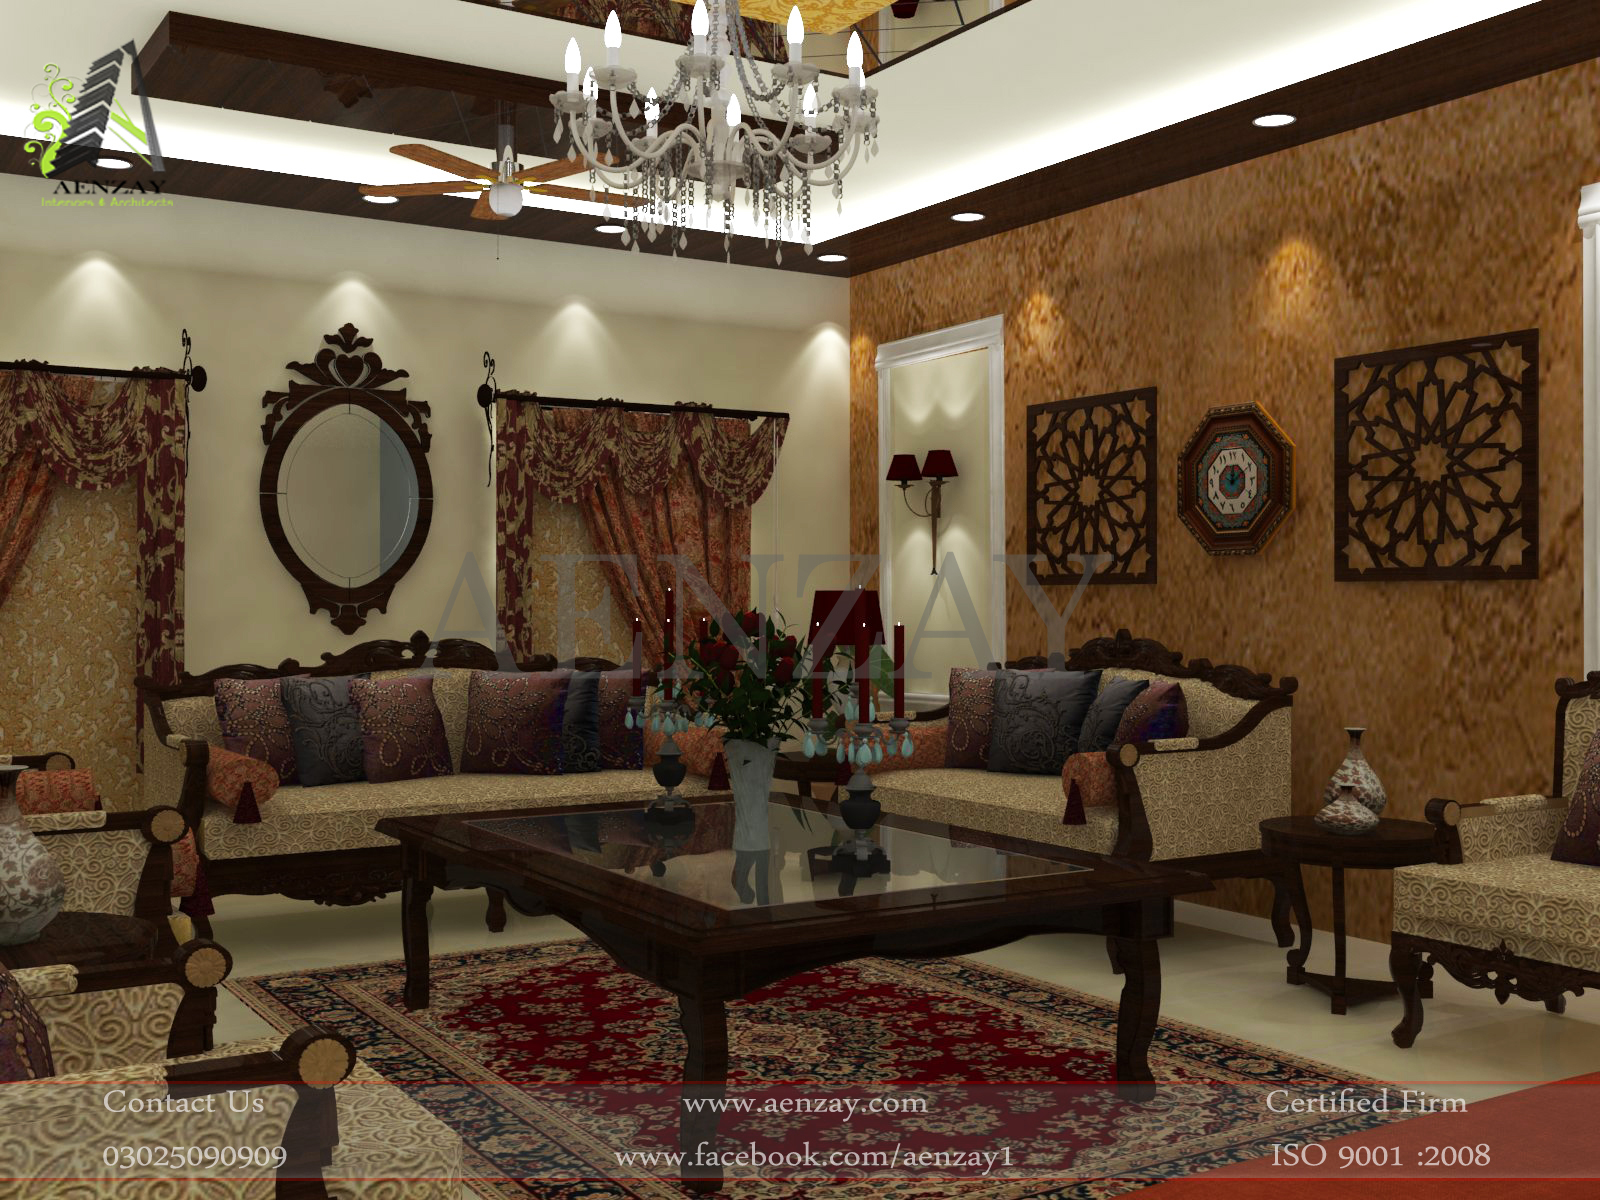 Drawing Room Designed by Aenzay at Multan  Aenzay